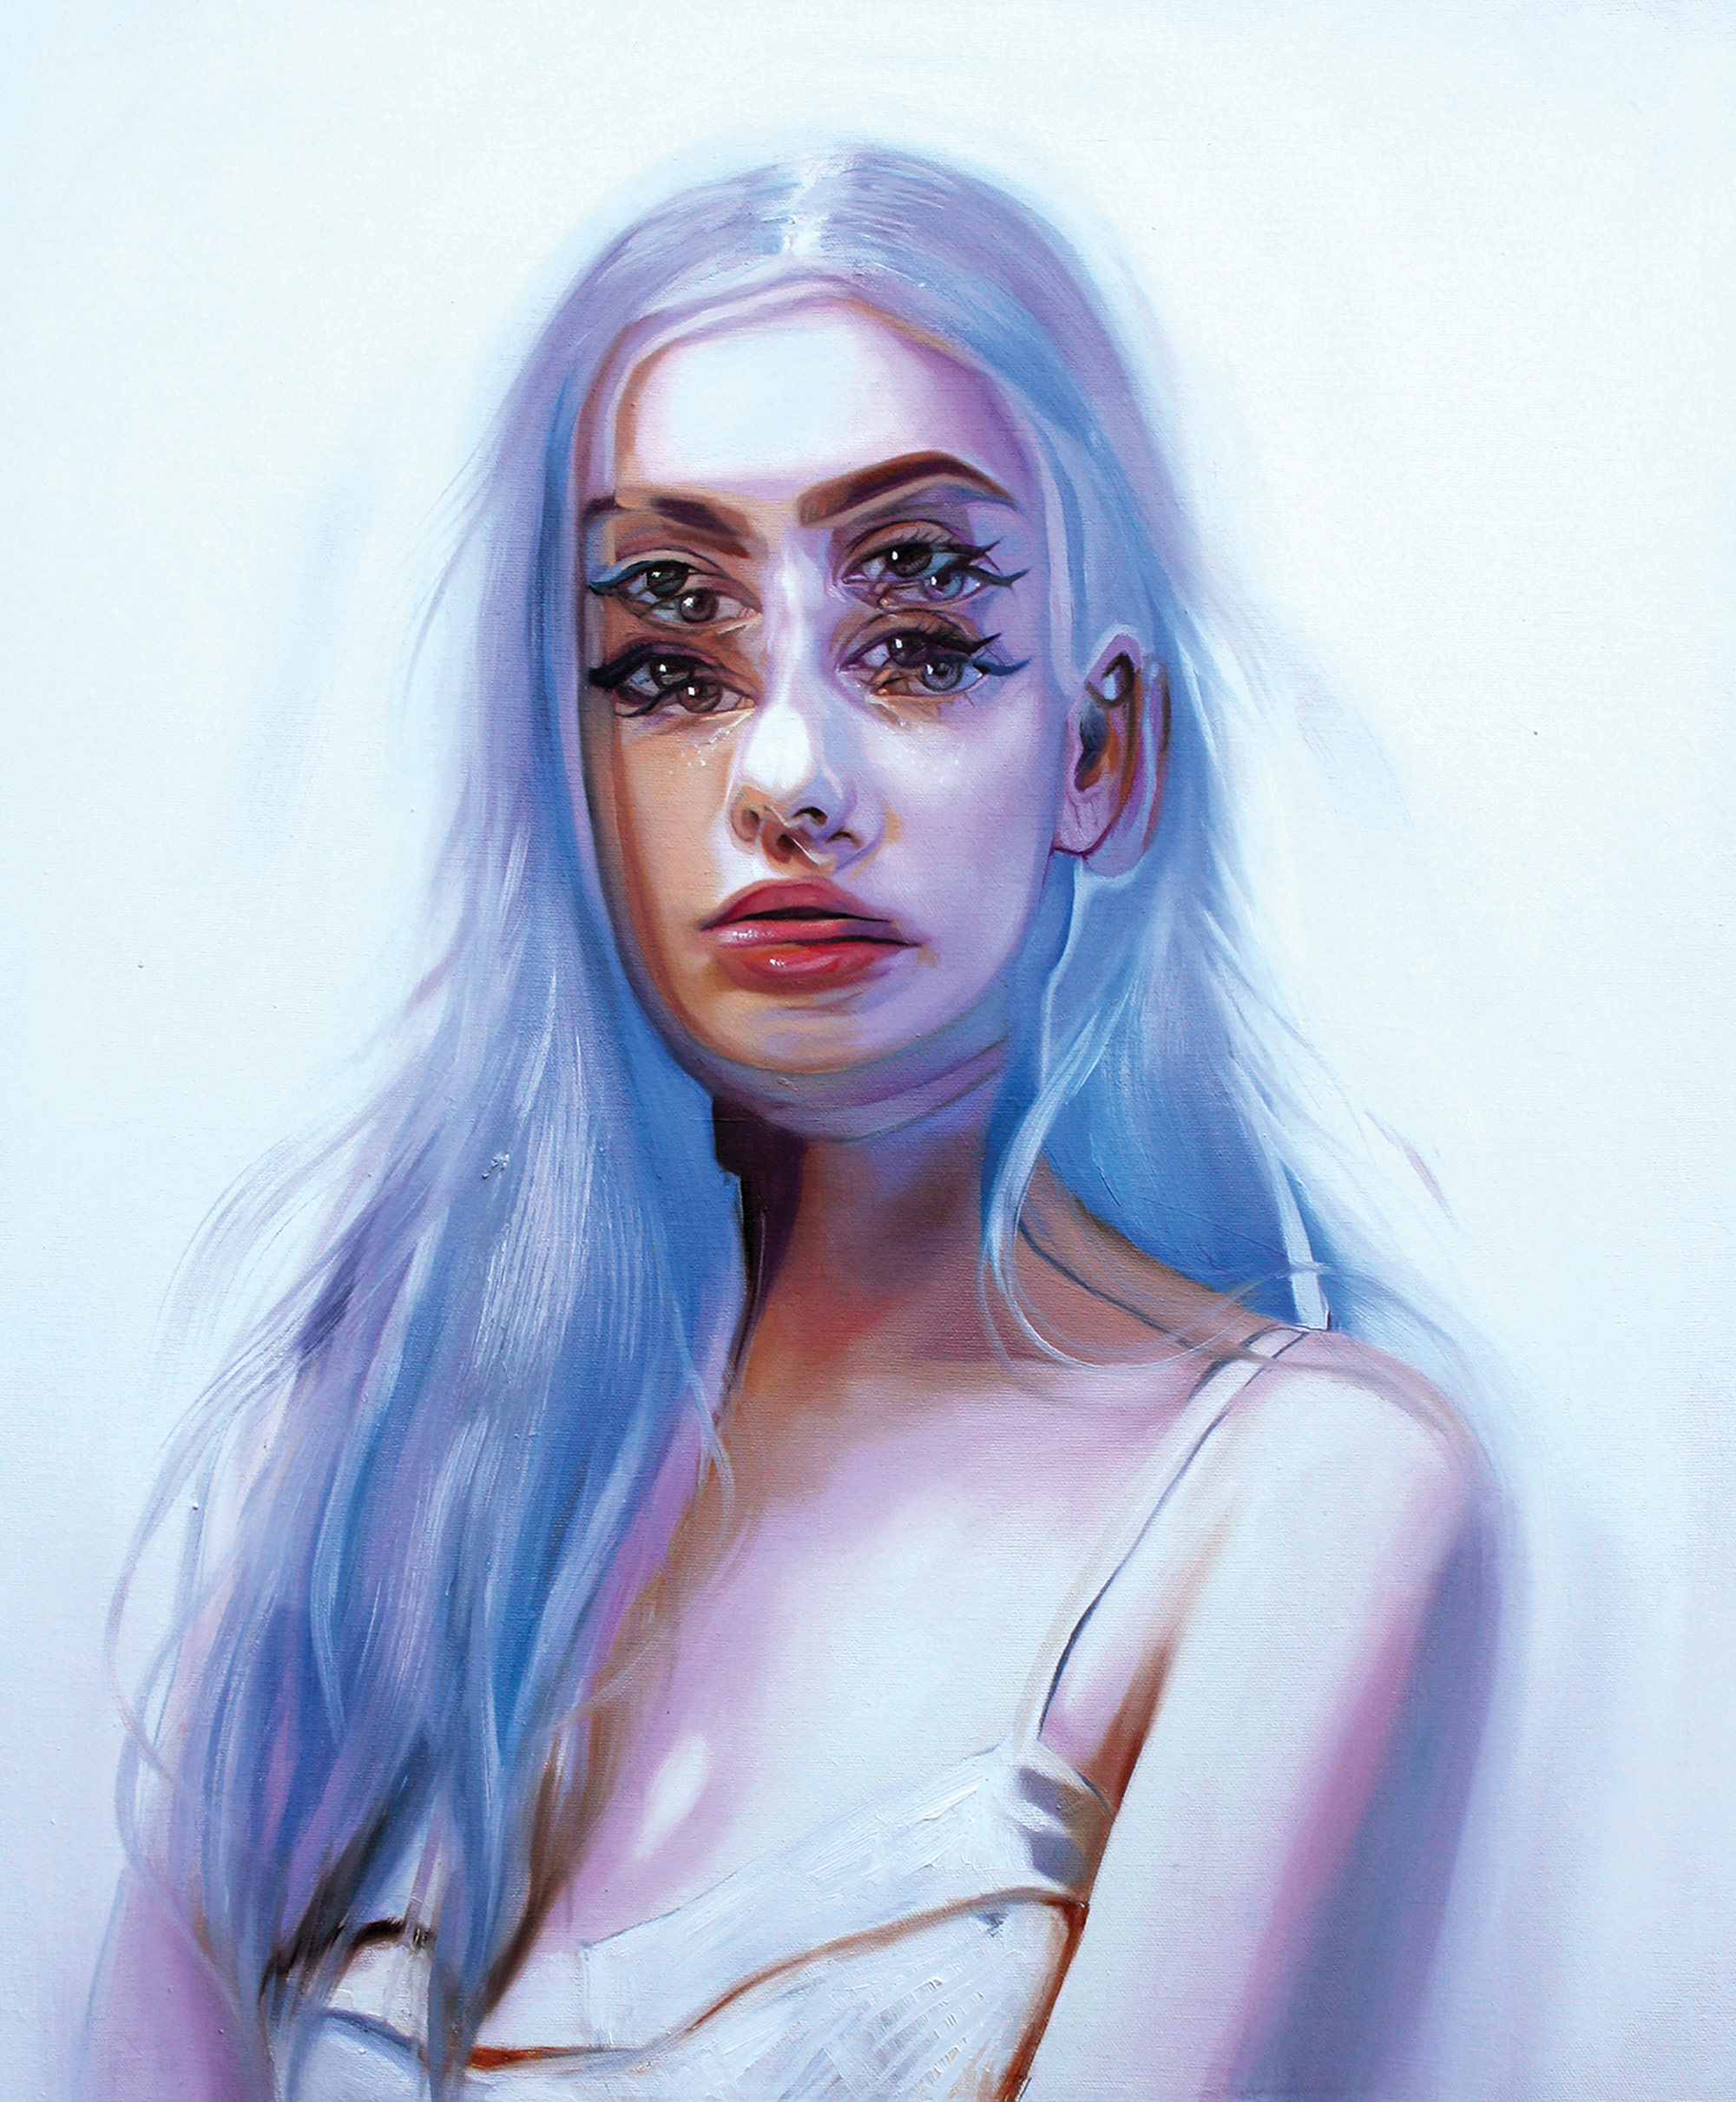 Queen of the Double Eyes: Paintings by Alex Garant